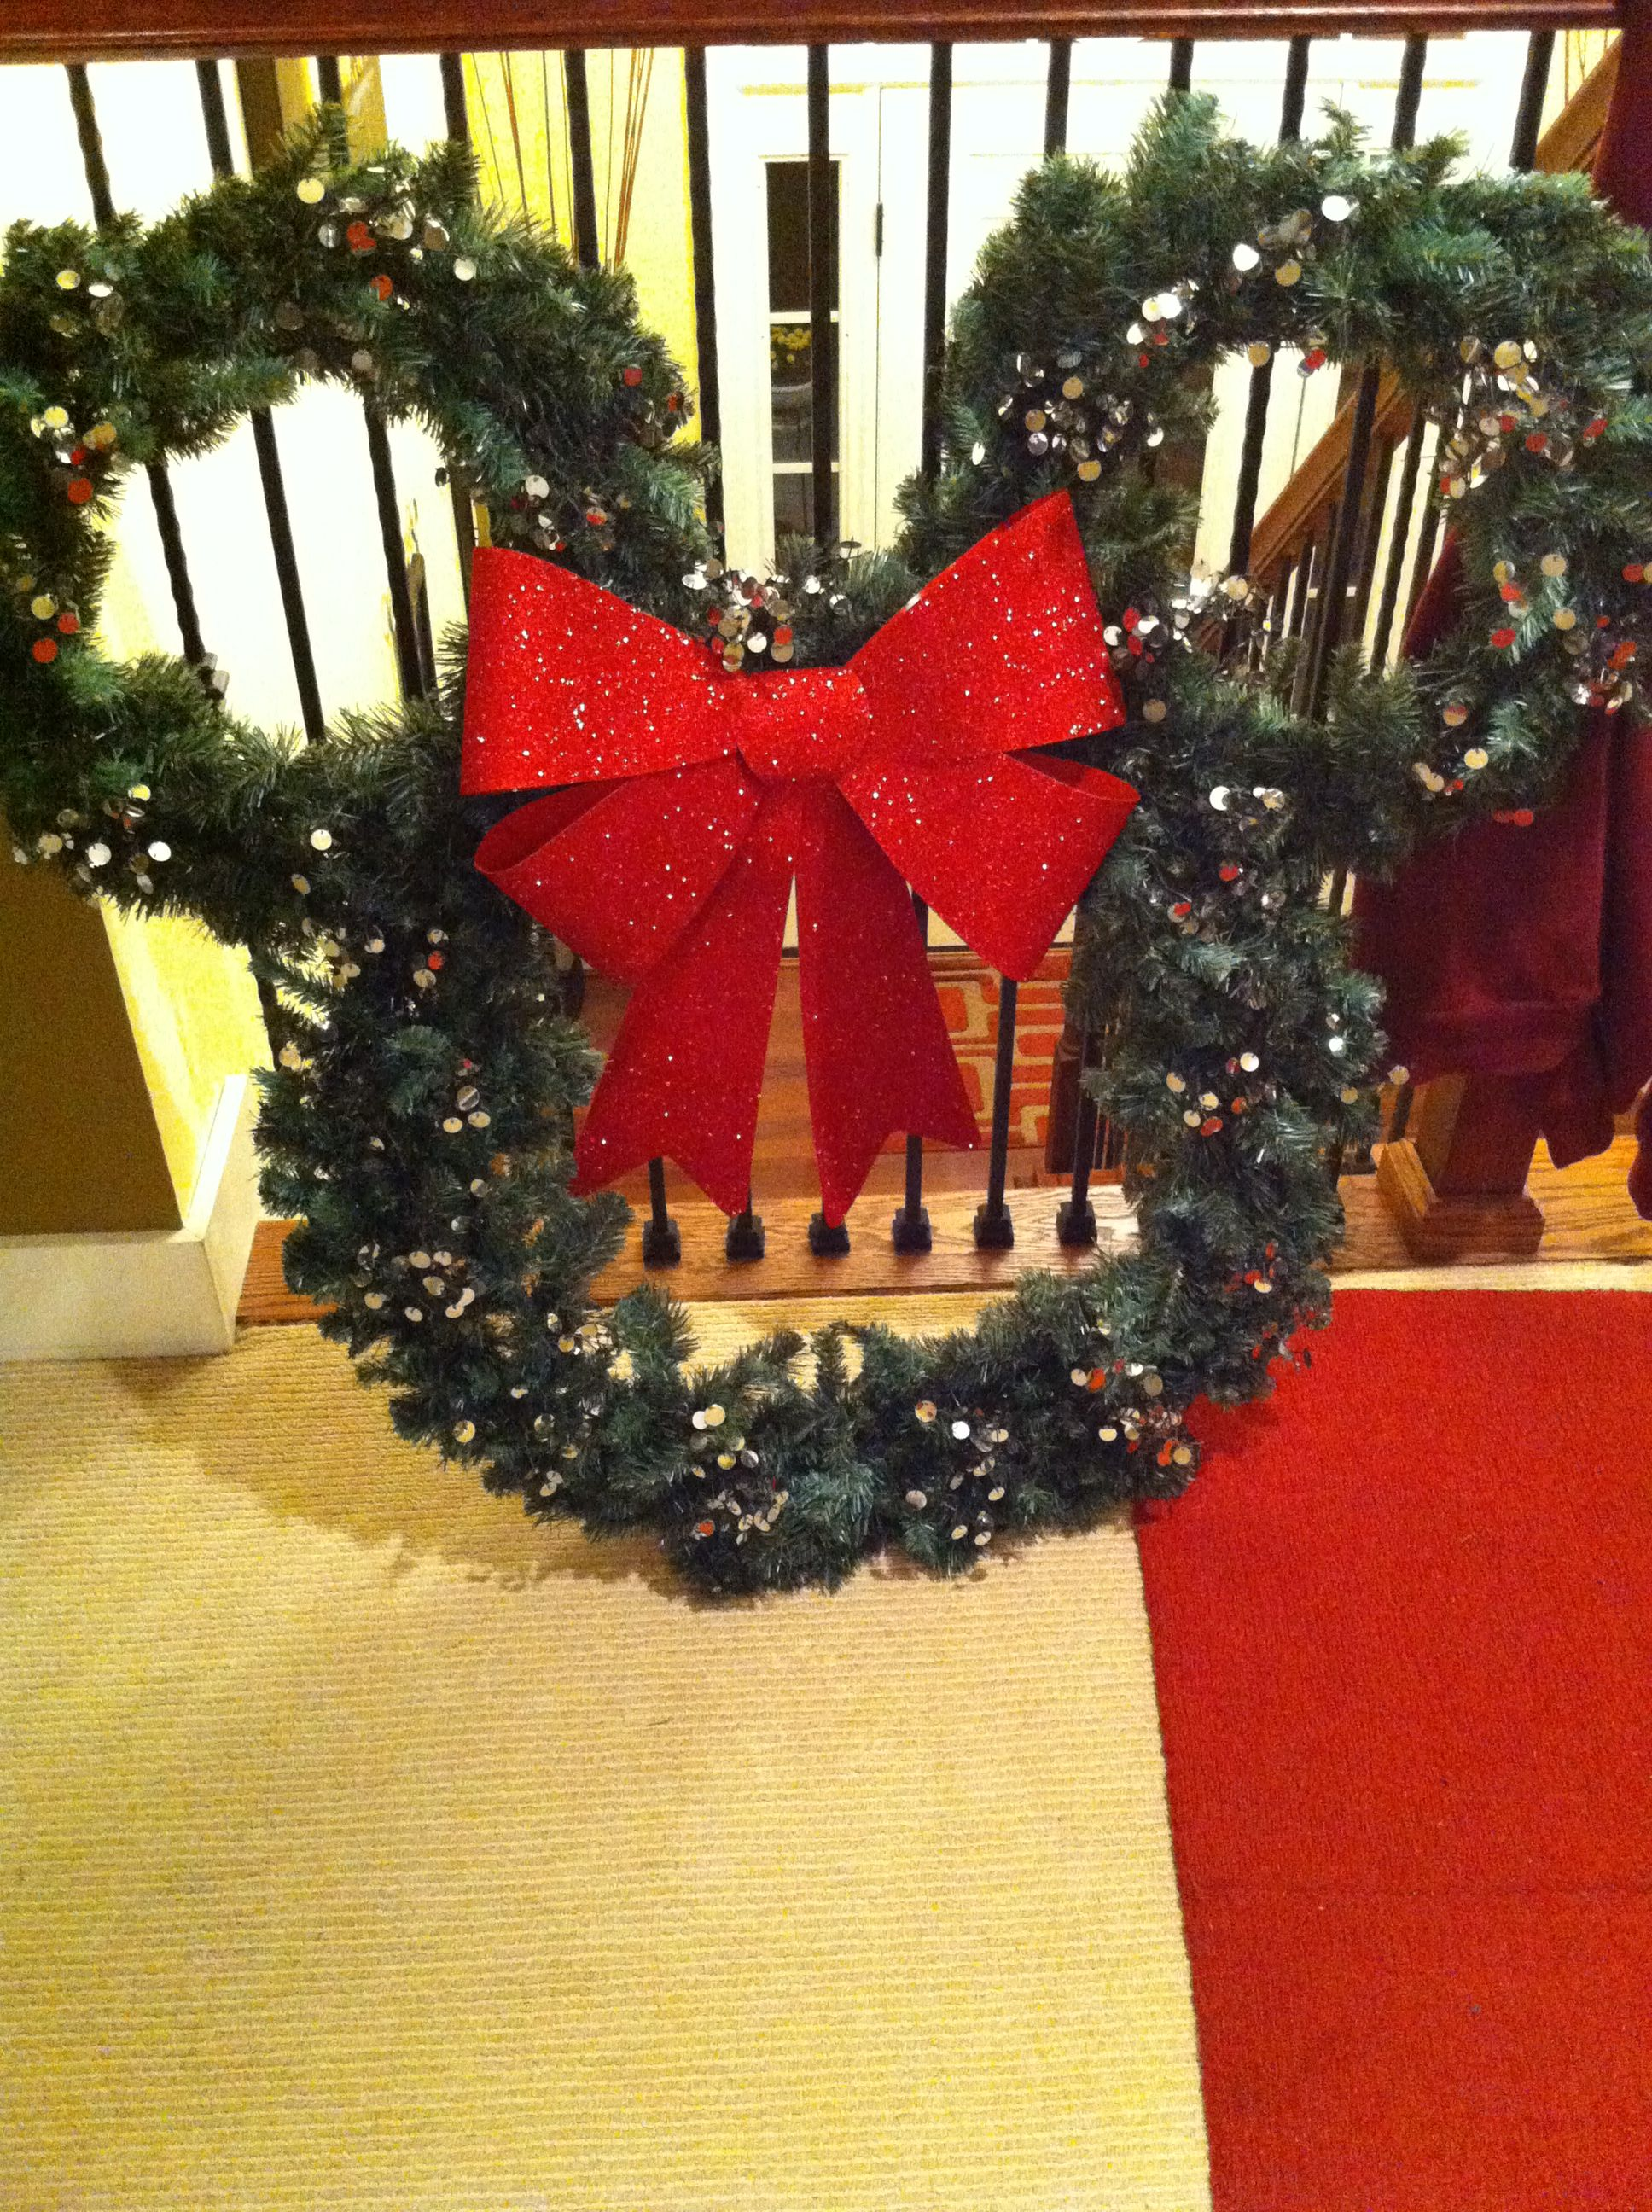 diy mickey mouse outdoors christmas wreath plan to hang this on our double windows outside the house using outdoor suction cups we found at lowes reall - Mickey Mouse Christmas House Decorations